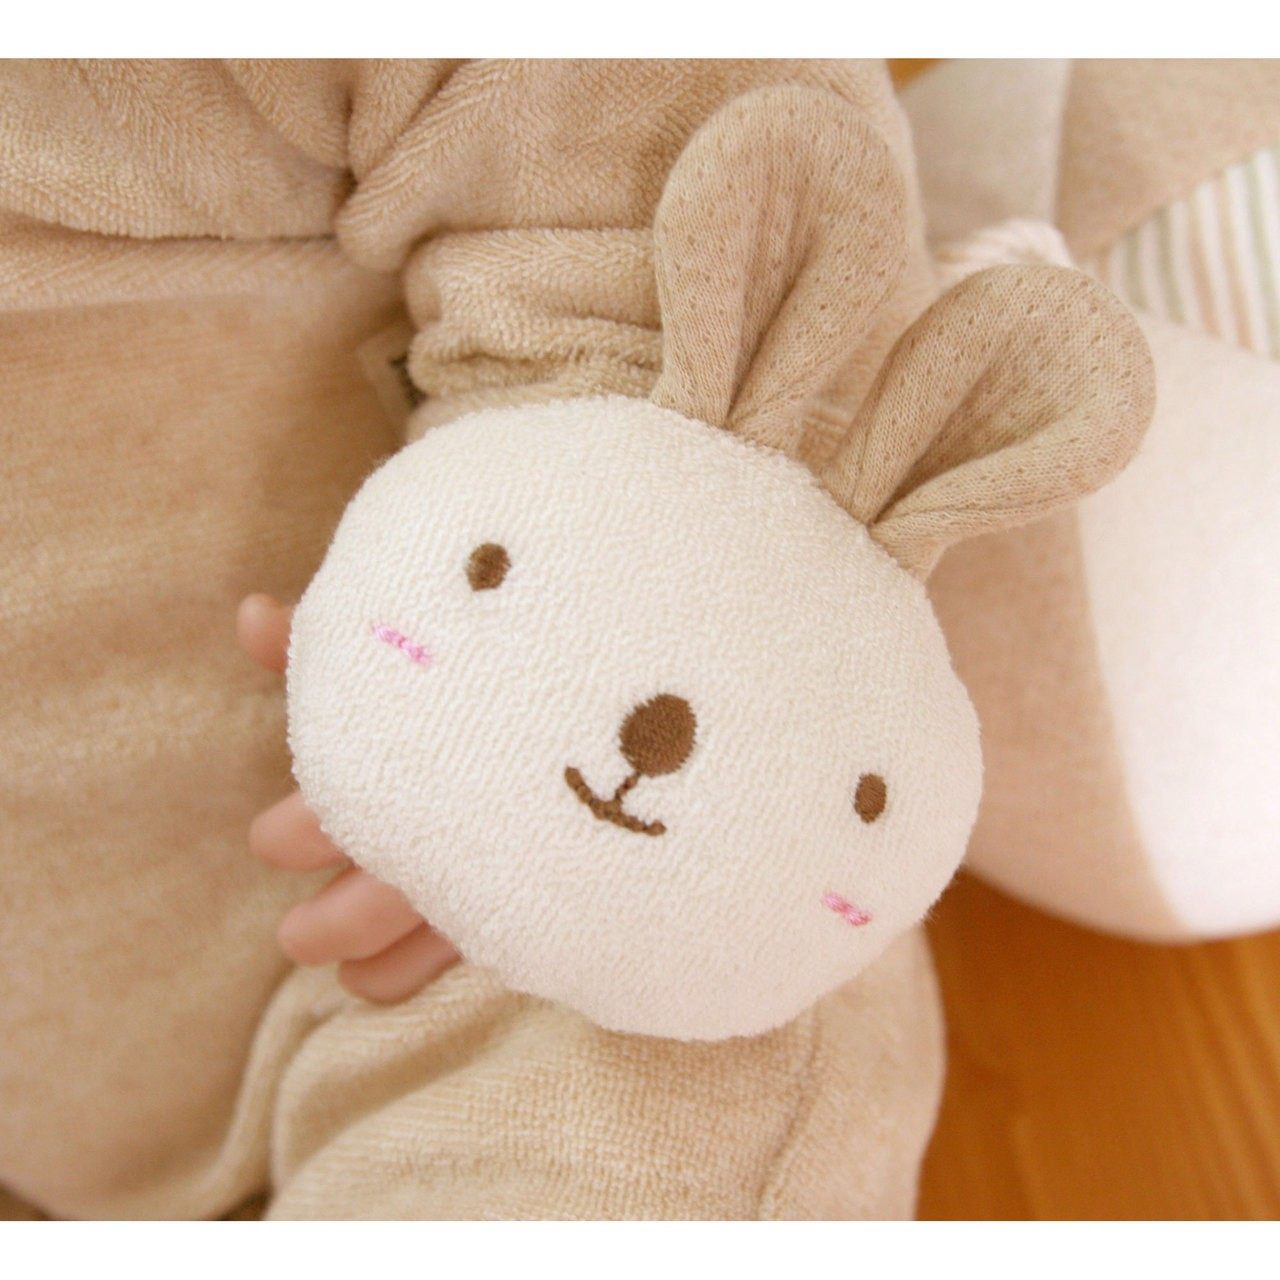 JOHN N TREE Rabbit Doll wrist rattle 10cm